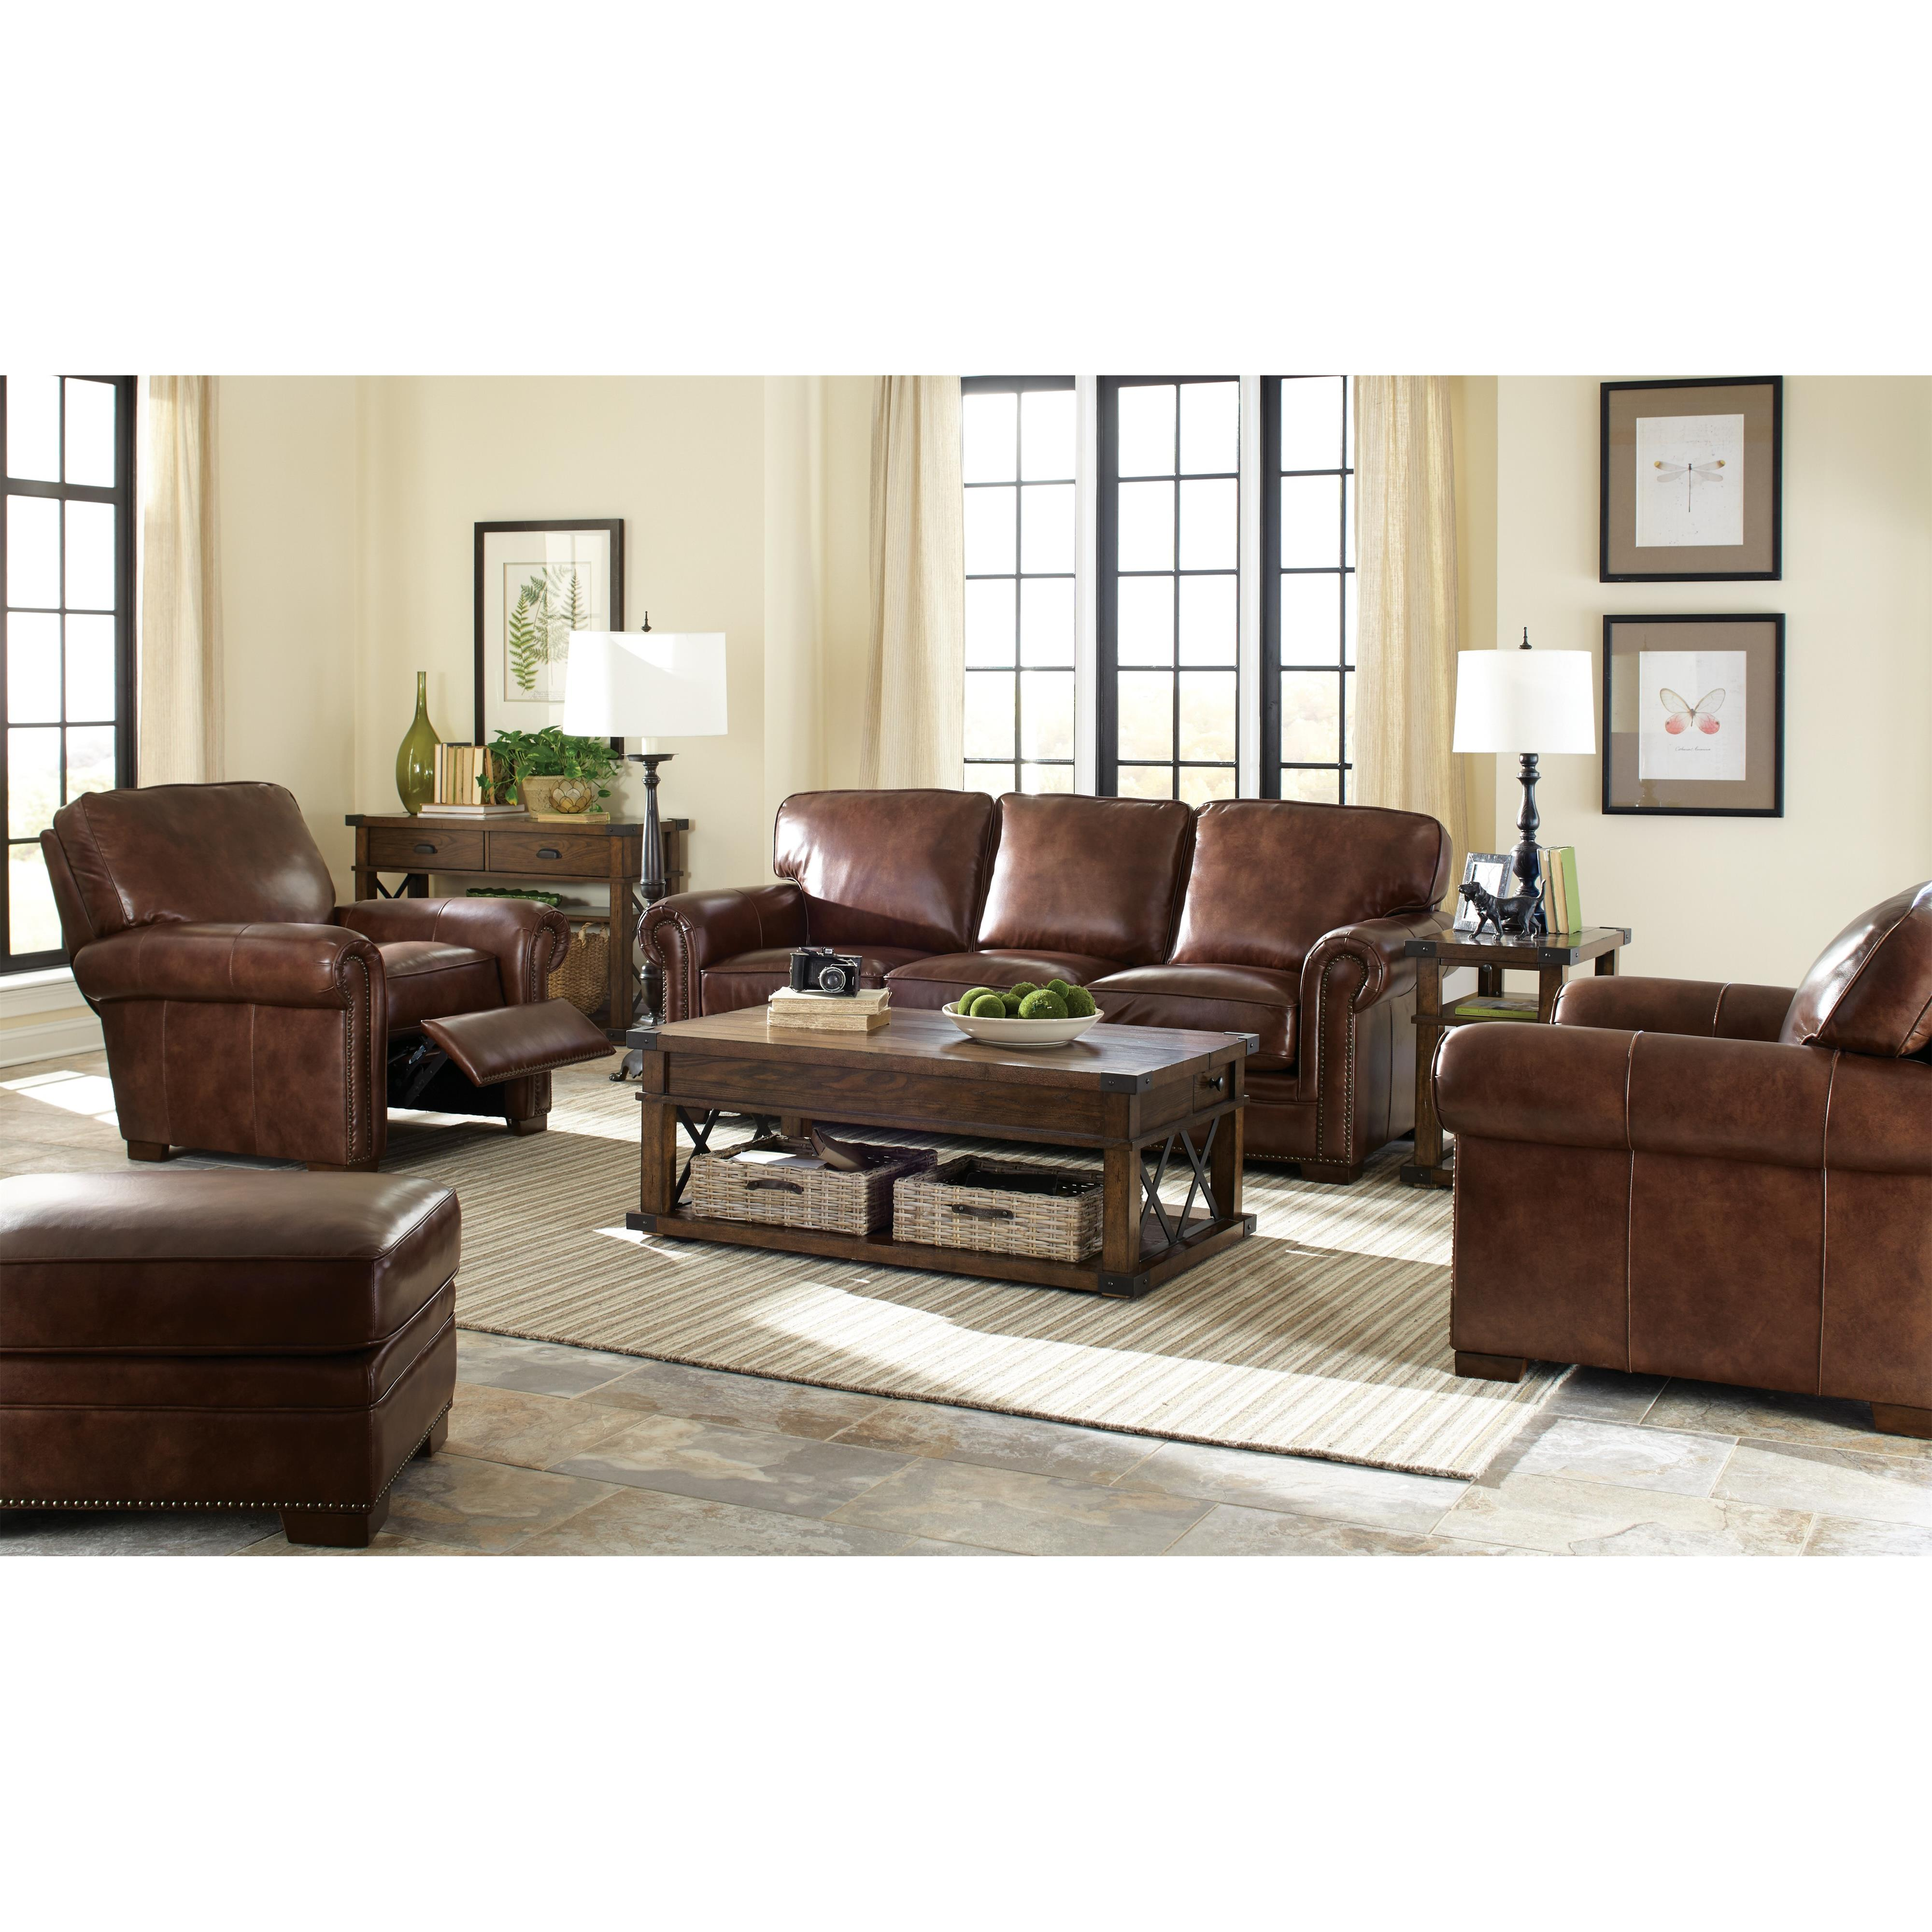 Leather Sofa with Rolled Arms and Nailheads by Craftmaster